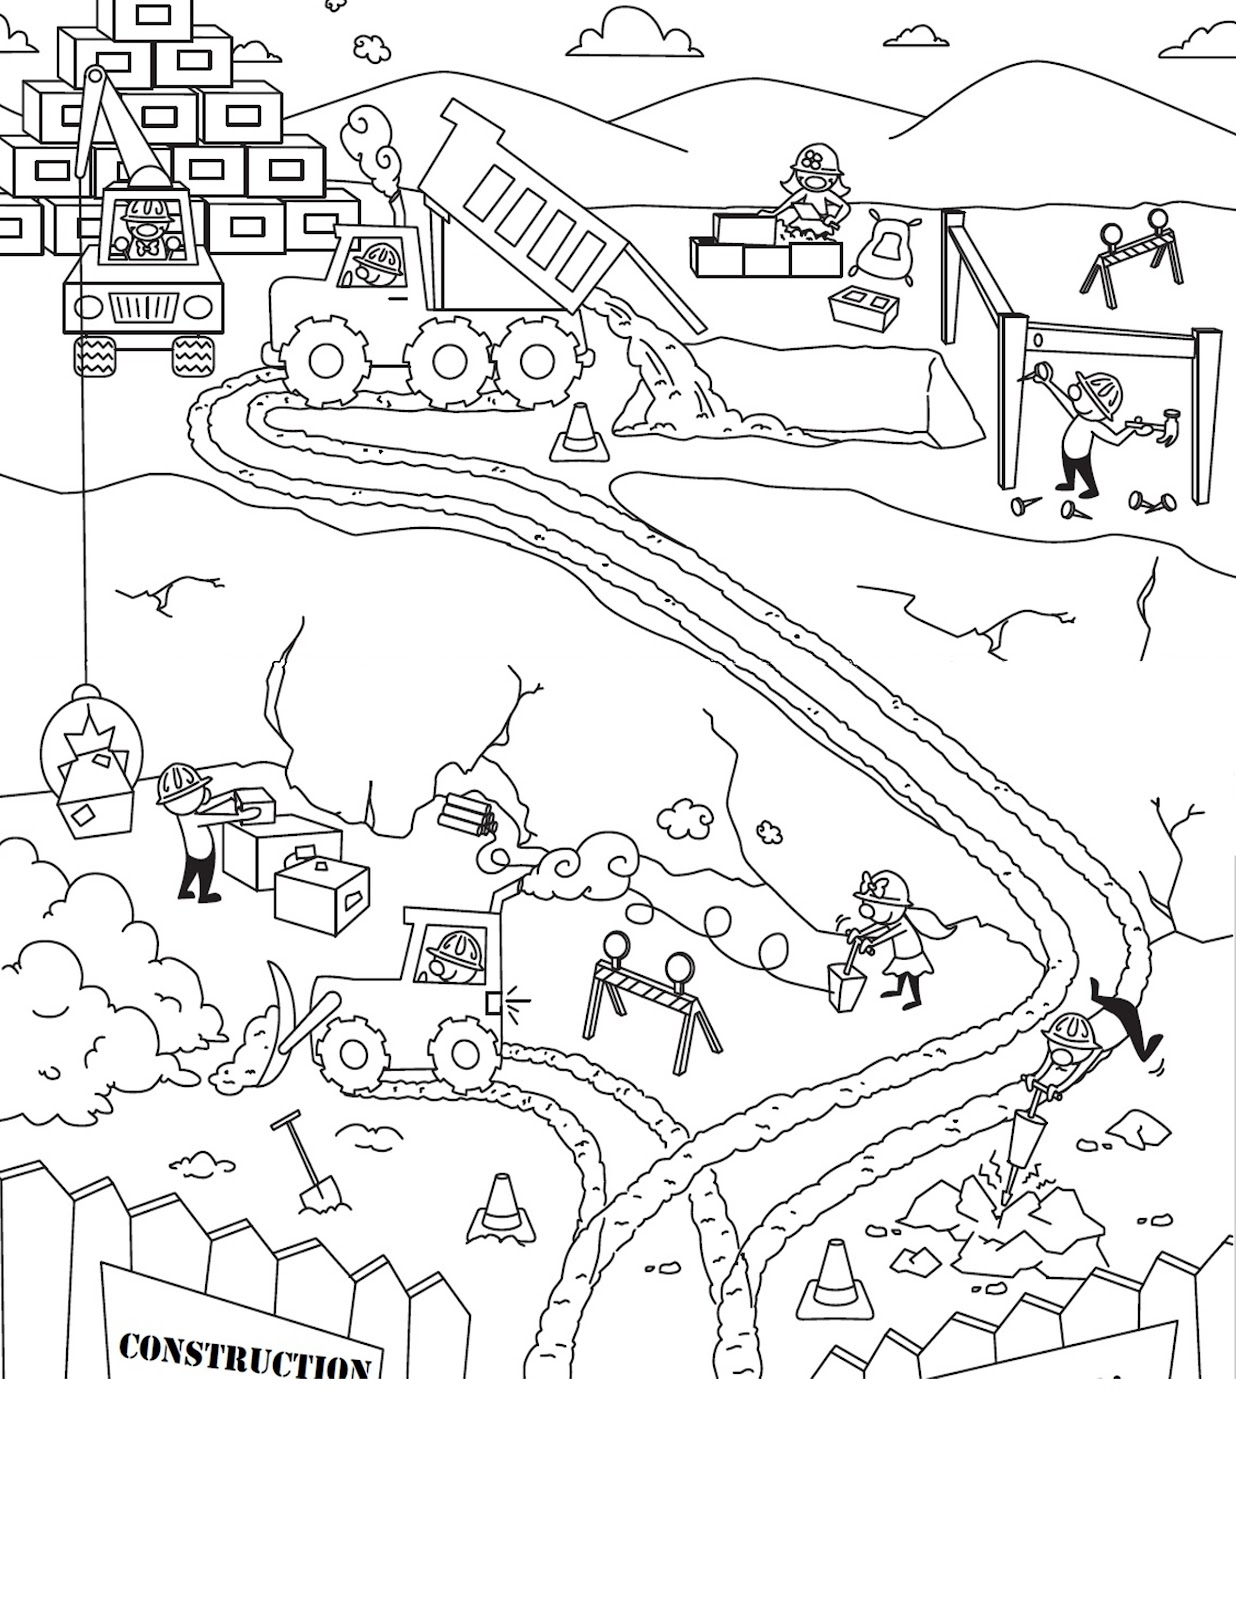 Printable Coloring Websites : Free construction site coloring pages